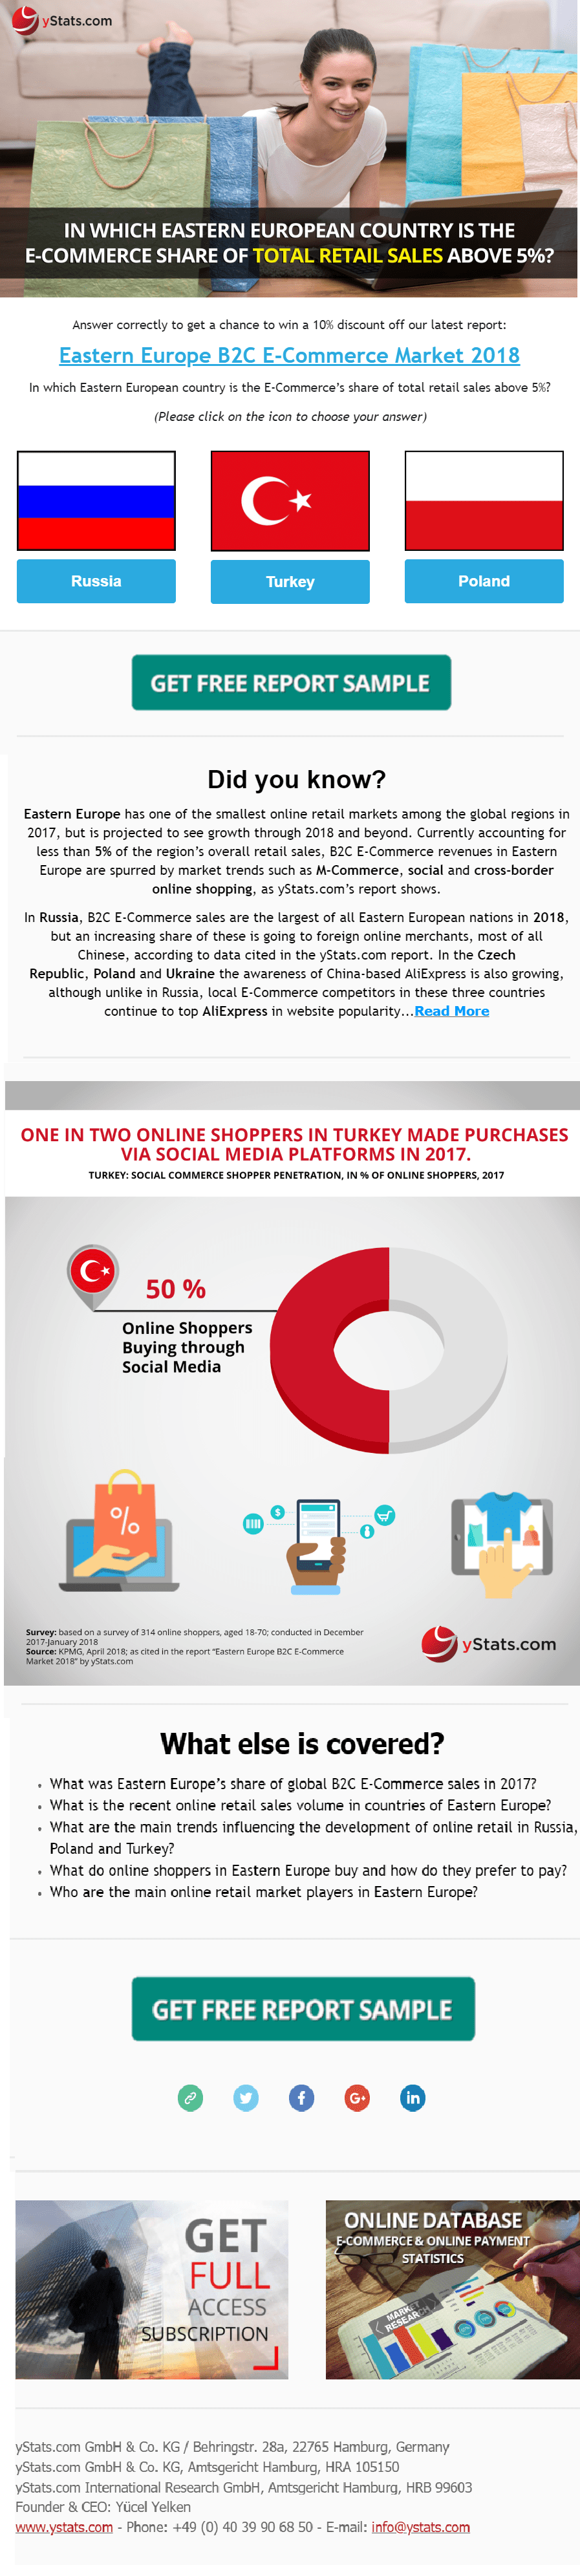 online retail online shopping europe